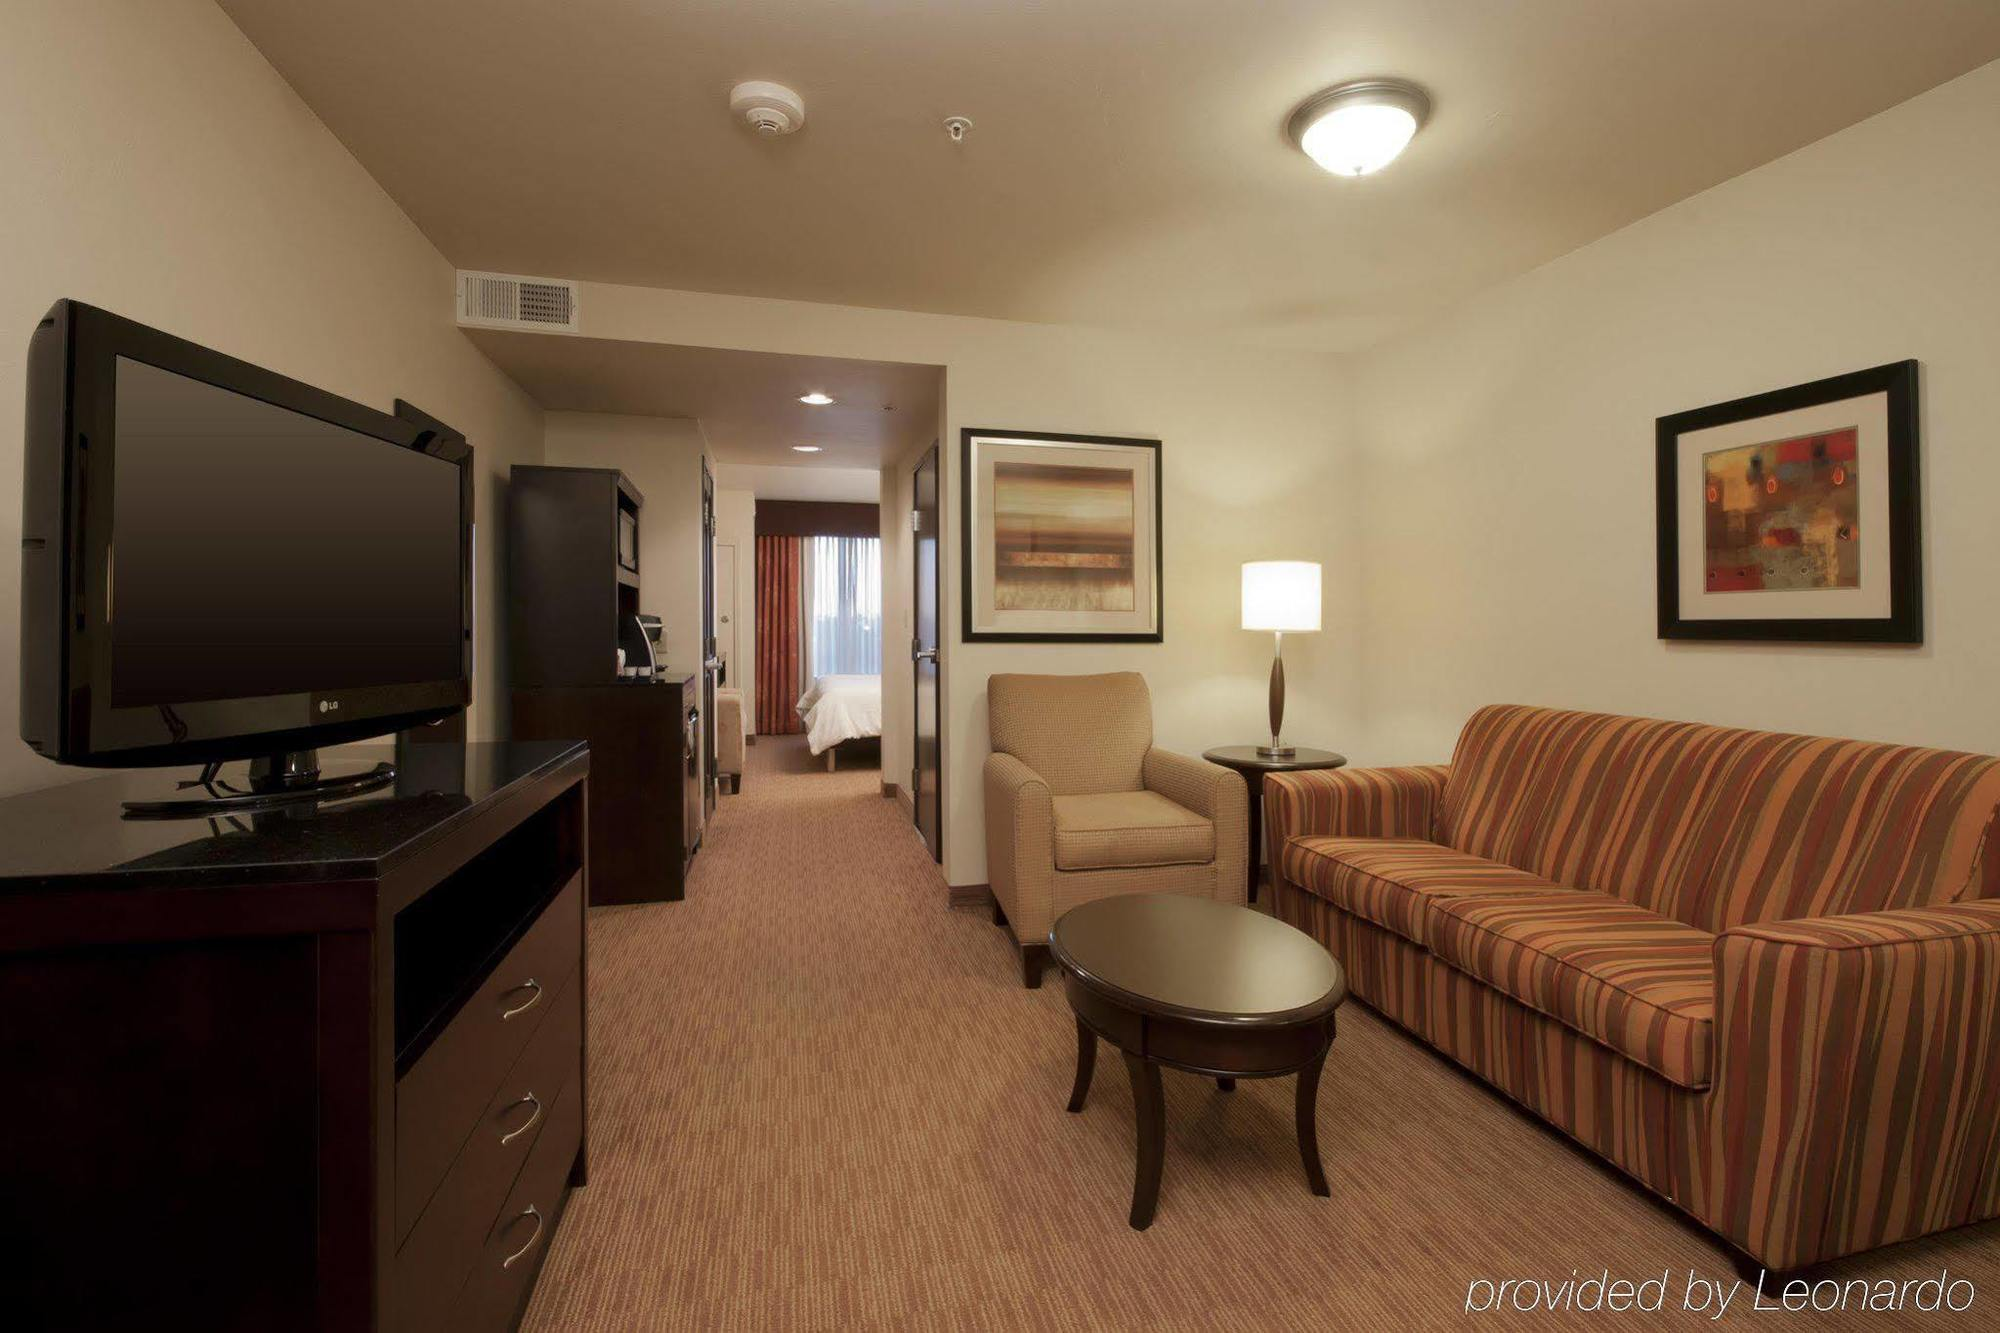 HILTON GARDEN INN OKLAHOMA CITY MIDTOWN, OKLAHOMA CITY ***